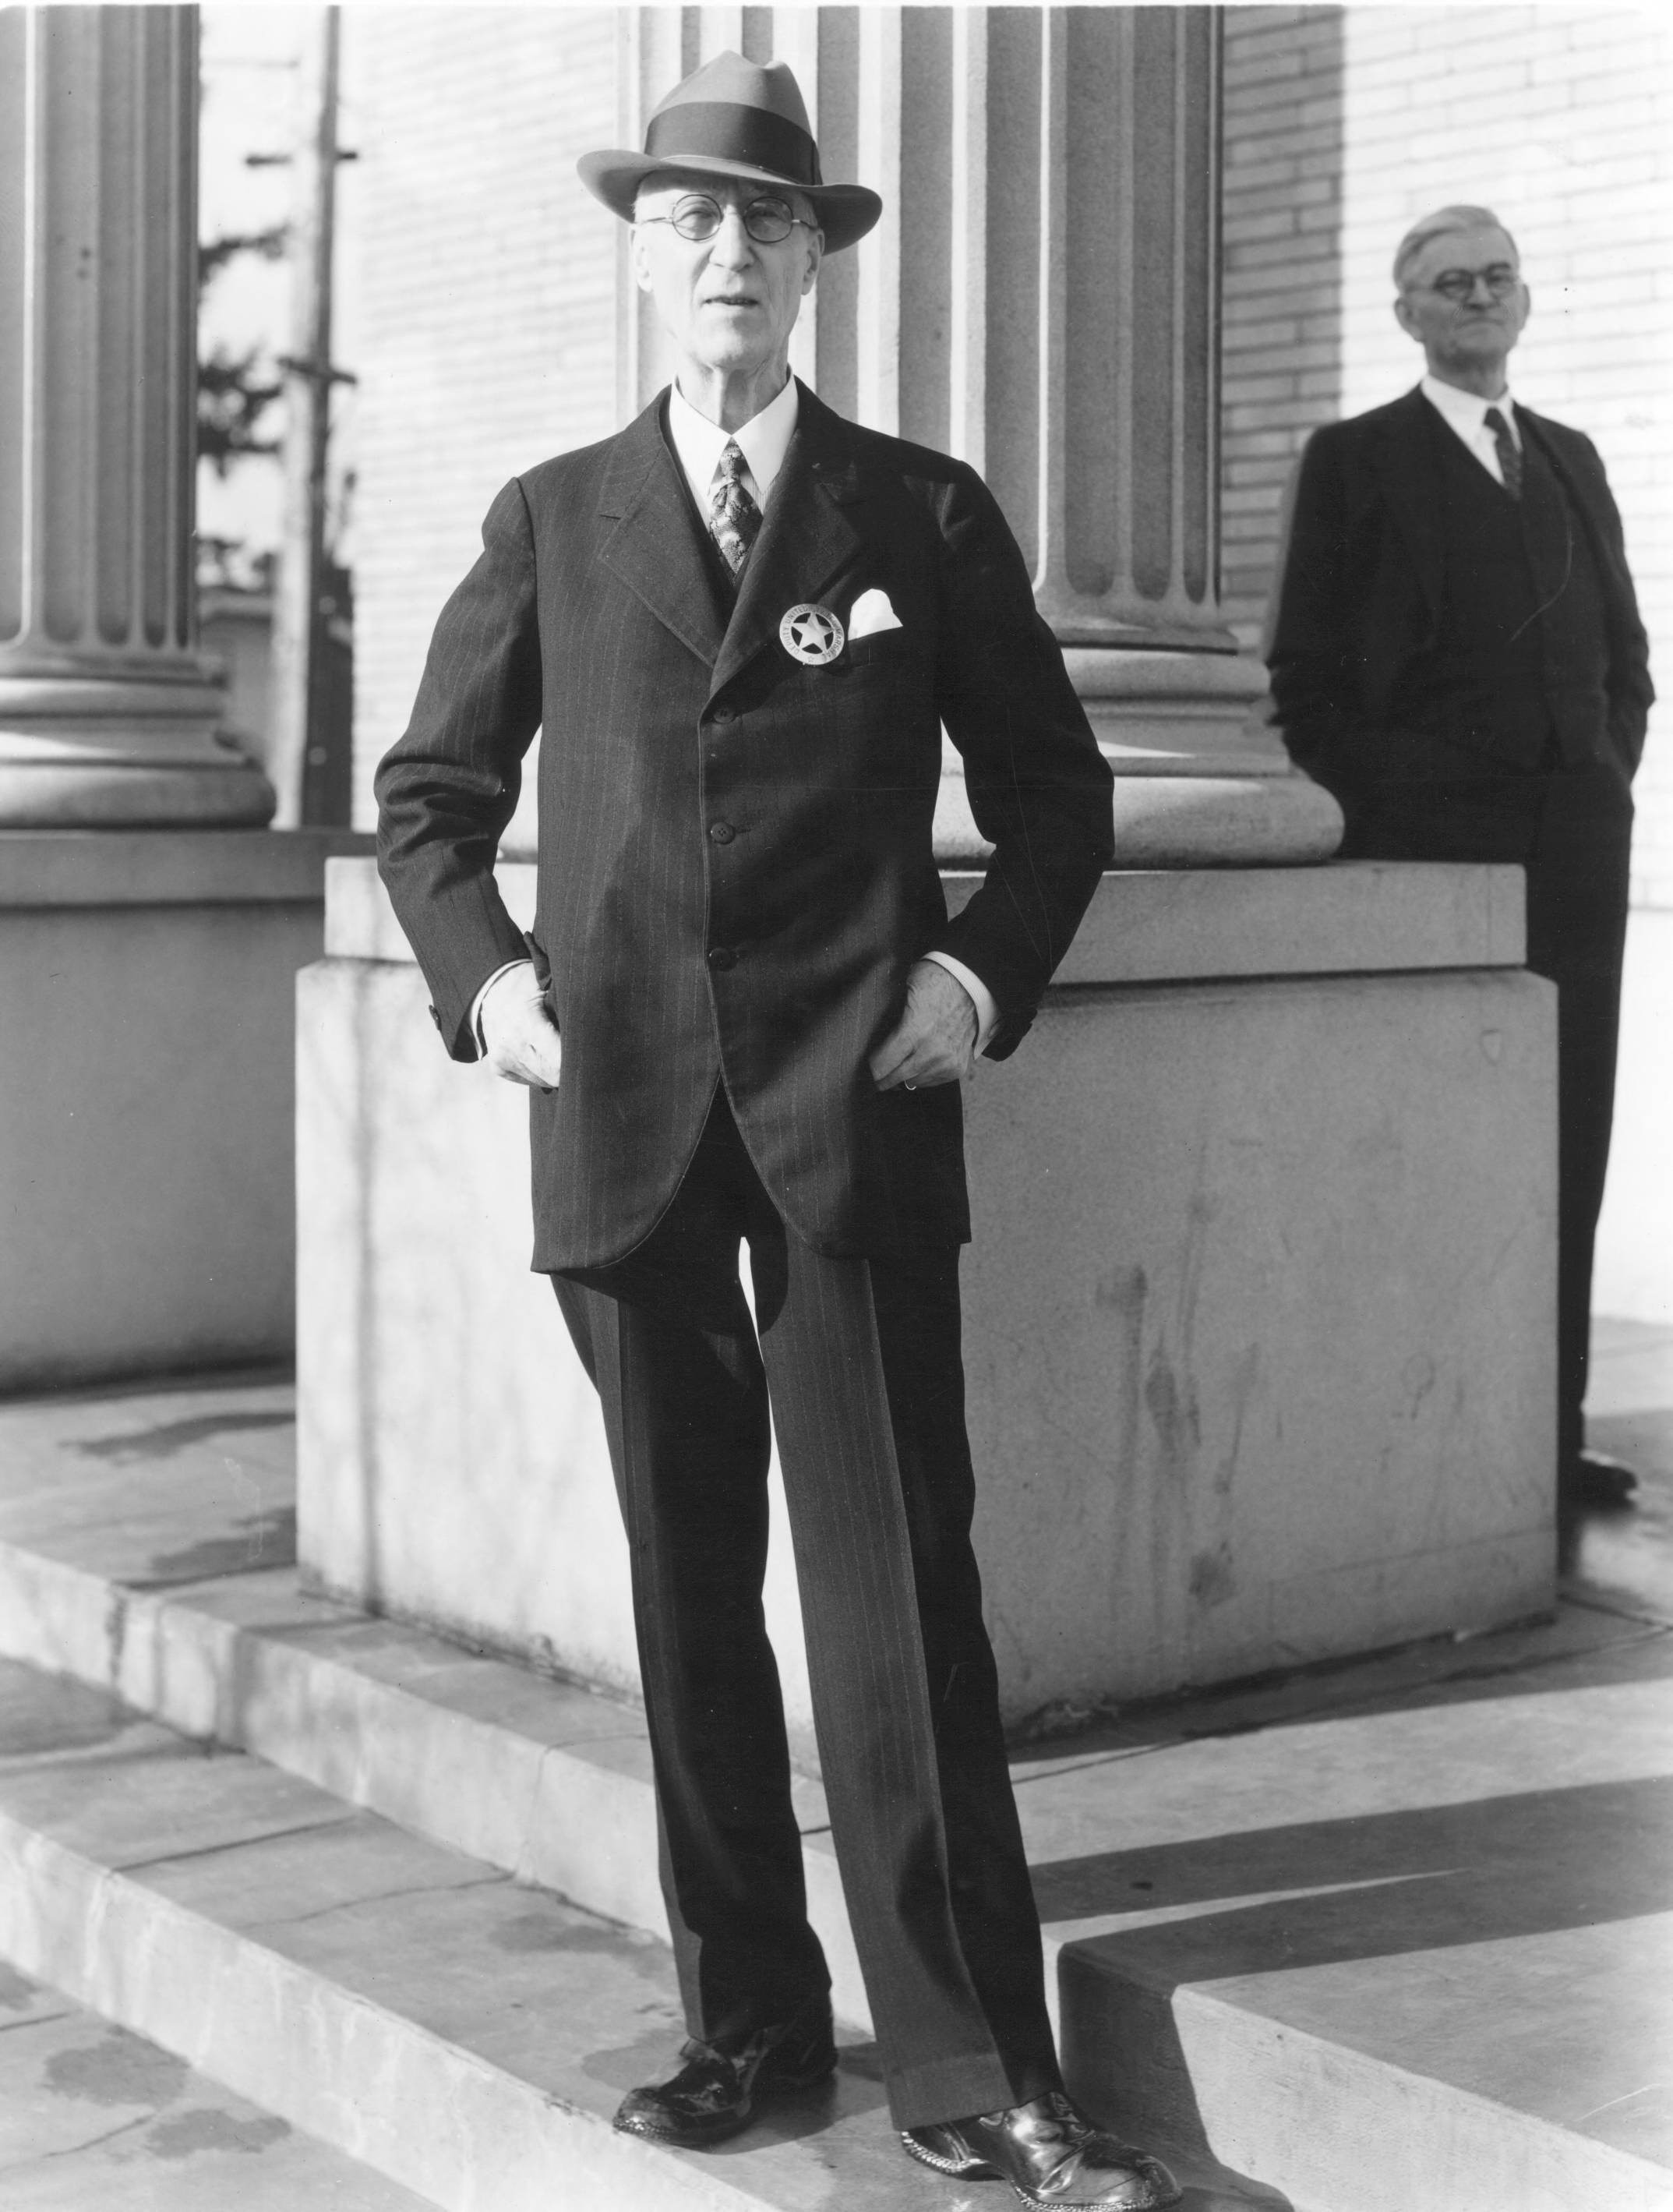 Alberty Whyte in 1935. Whyte was Captain of Tacoma's Home Guard during the events of November 3rd, 1885.